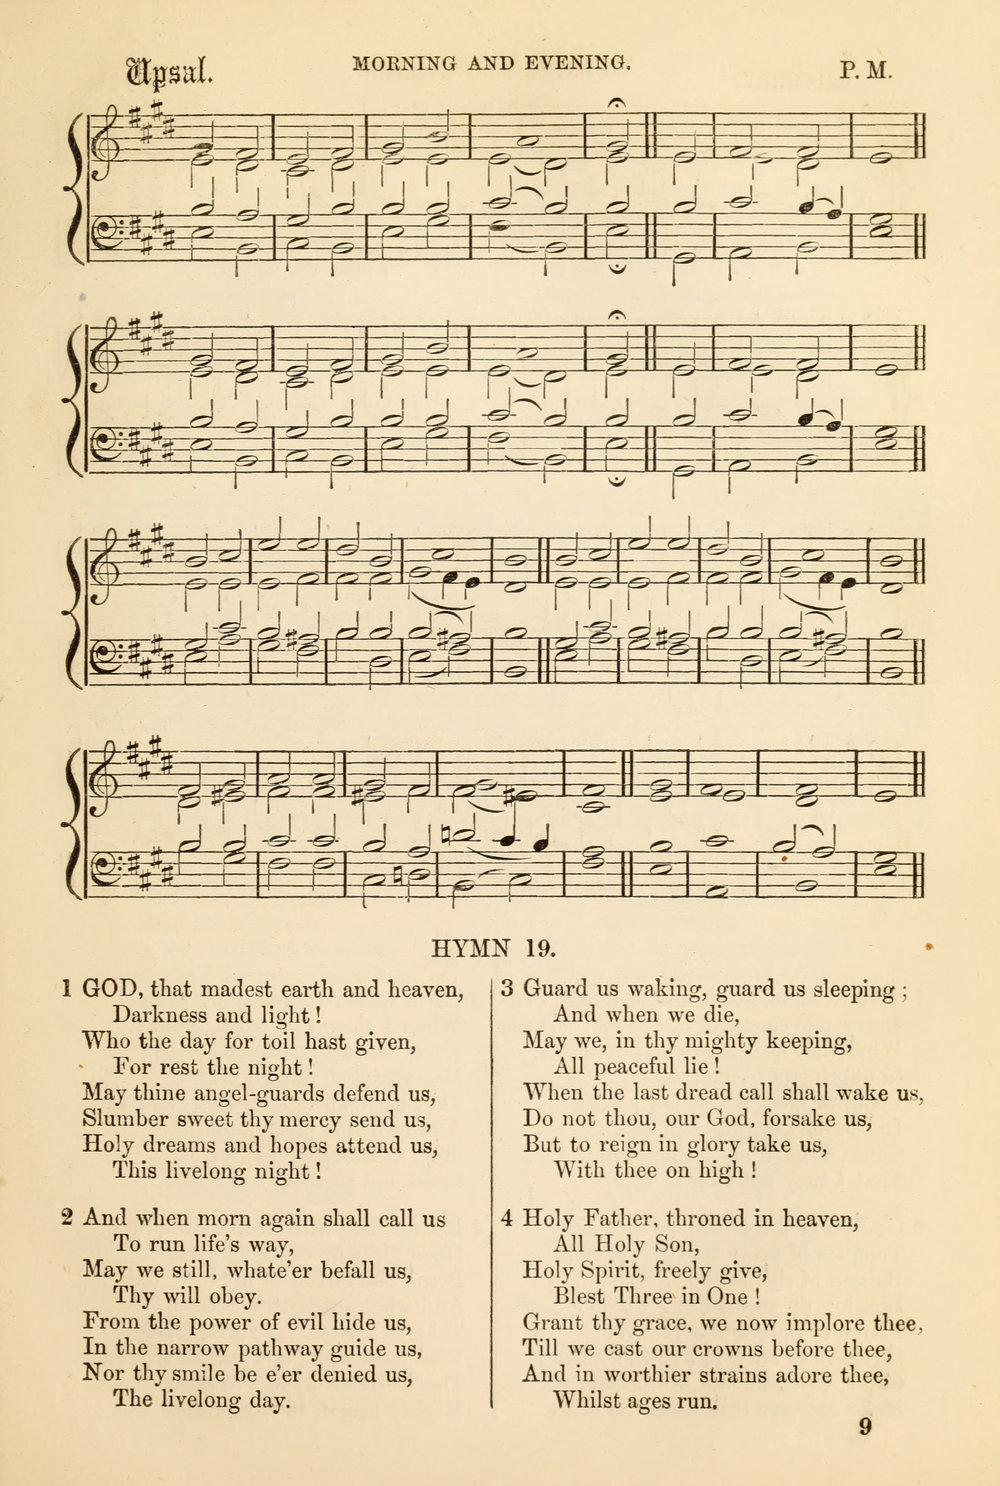 Fig. 6.   Church Psalter and Hymn Book  (London: James Nisbet, 1864).